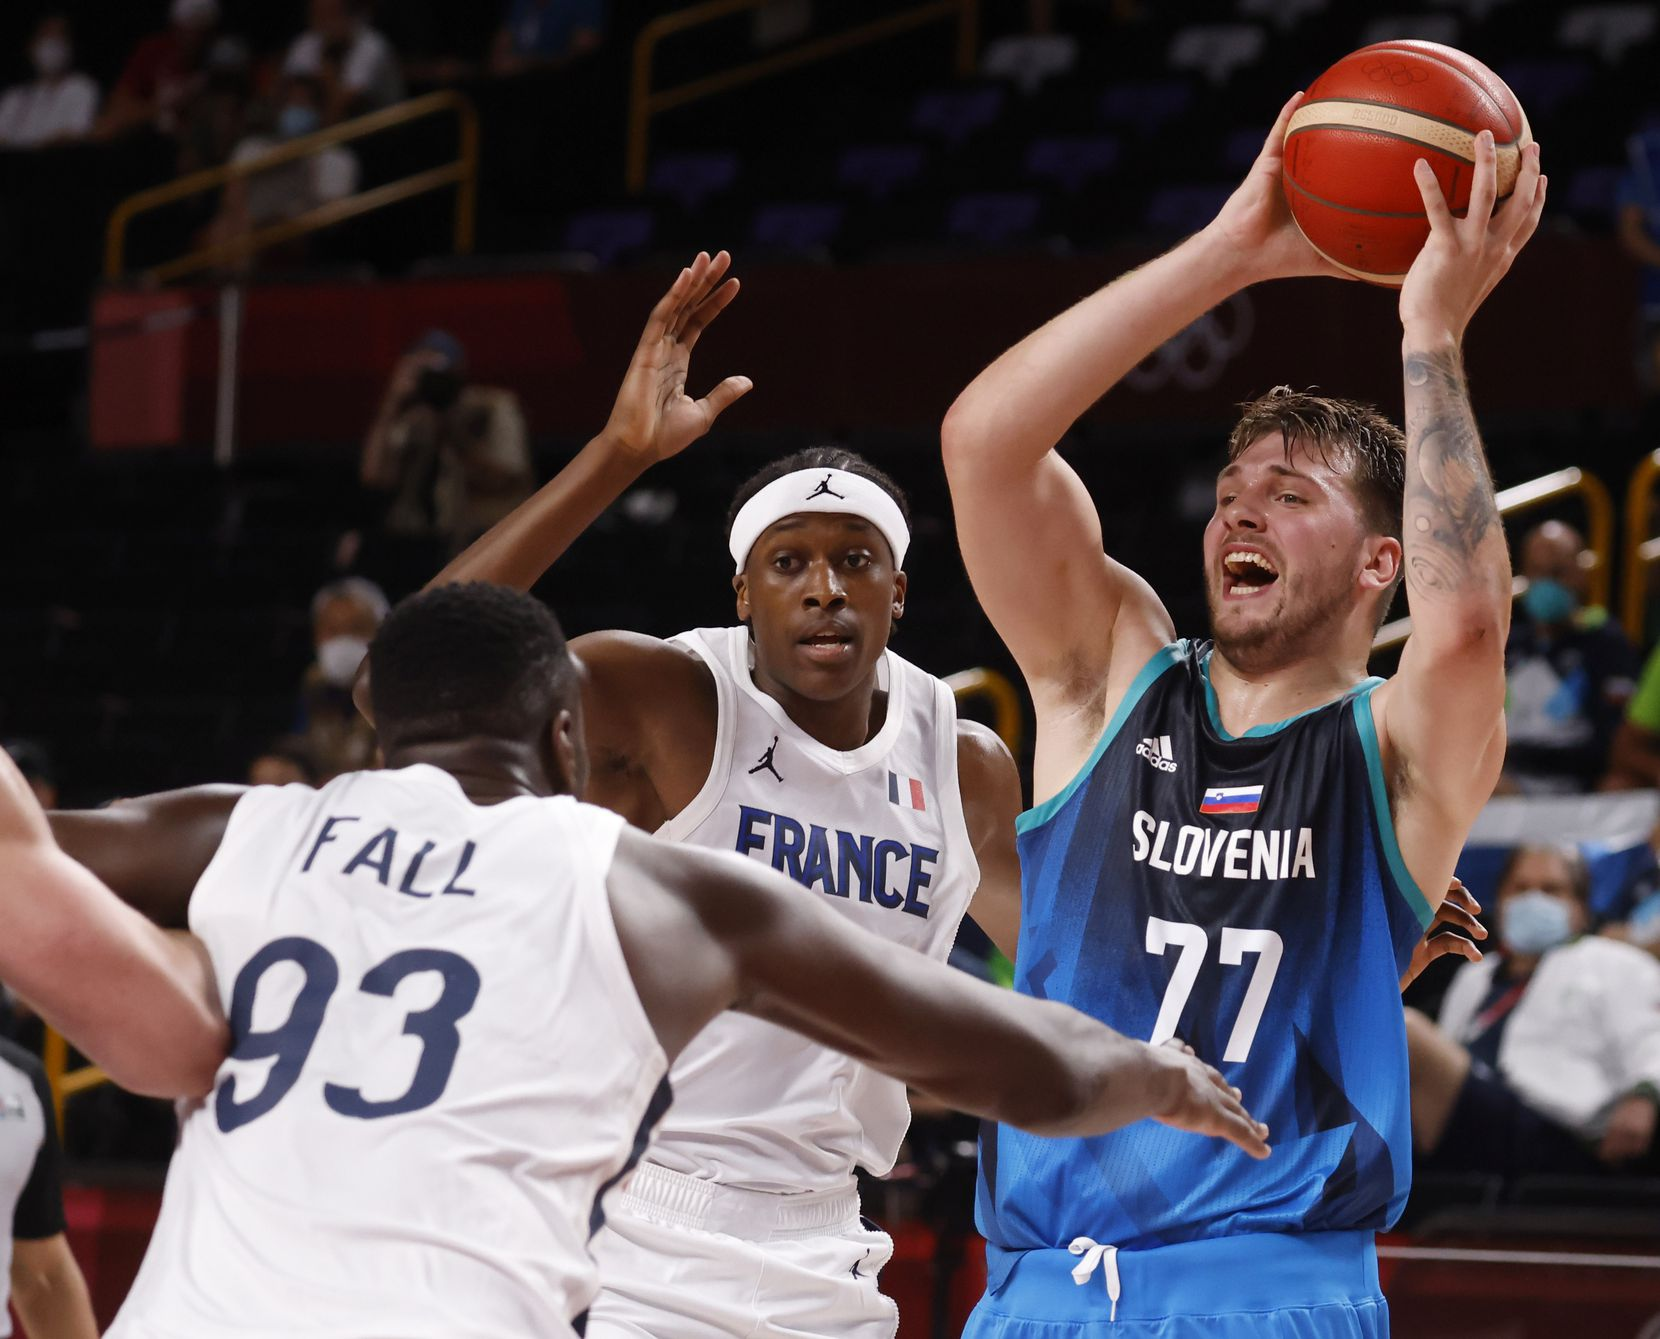 Slovenia's Luka Doncic (77) looks to pass as France's Moustapha Fall (93) steps up to defend during the first half of a men's basketball semifinal at the postponed 2020 Tokyo Olympics at Saitama Super Arena, on Thursday, August 5, 2021, in Saitama, Japan. (Vernon Bryant/The Dallas Morning News)